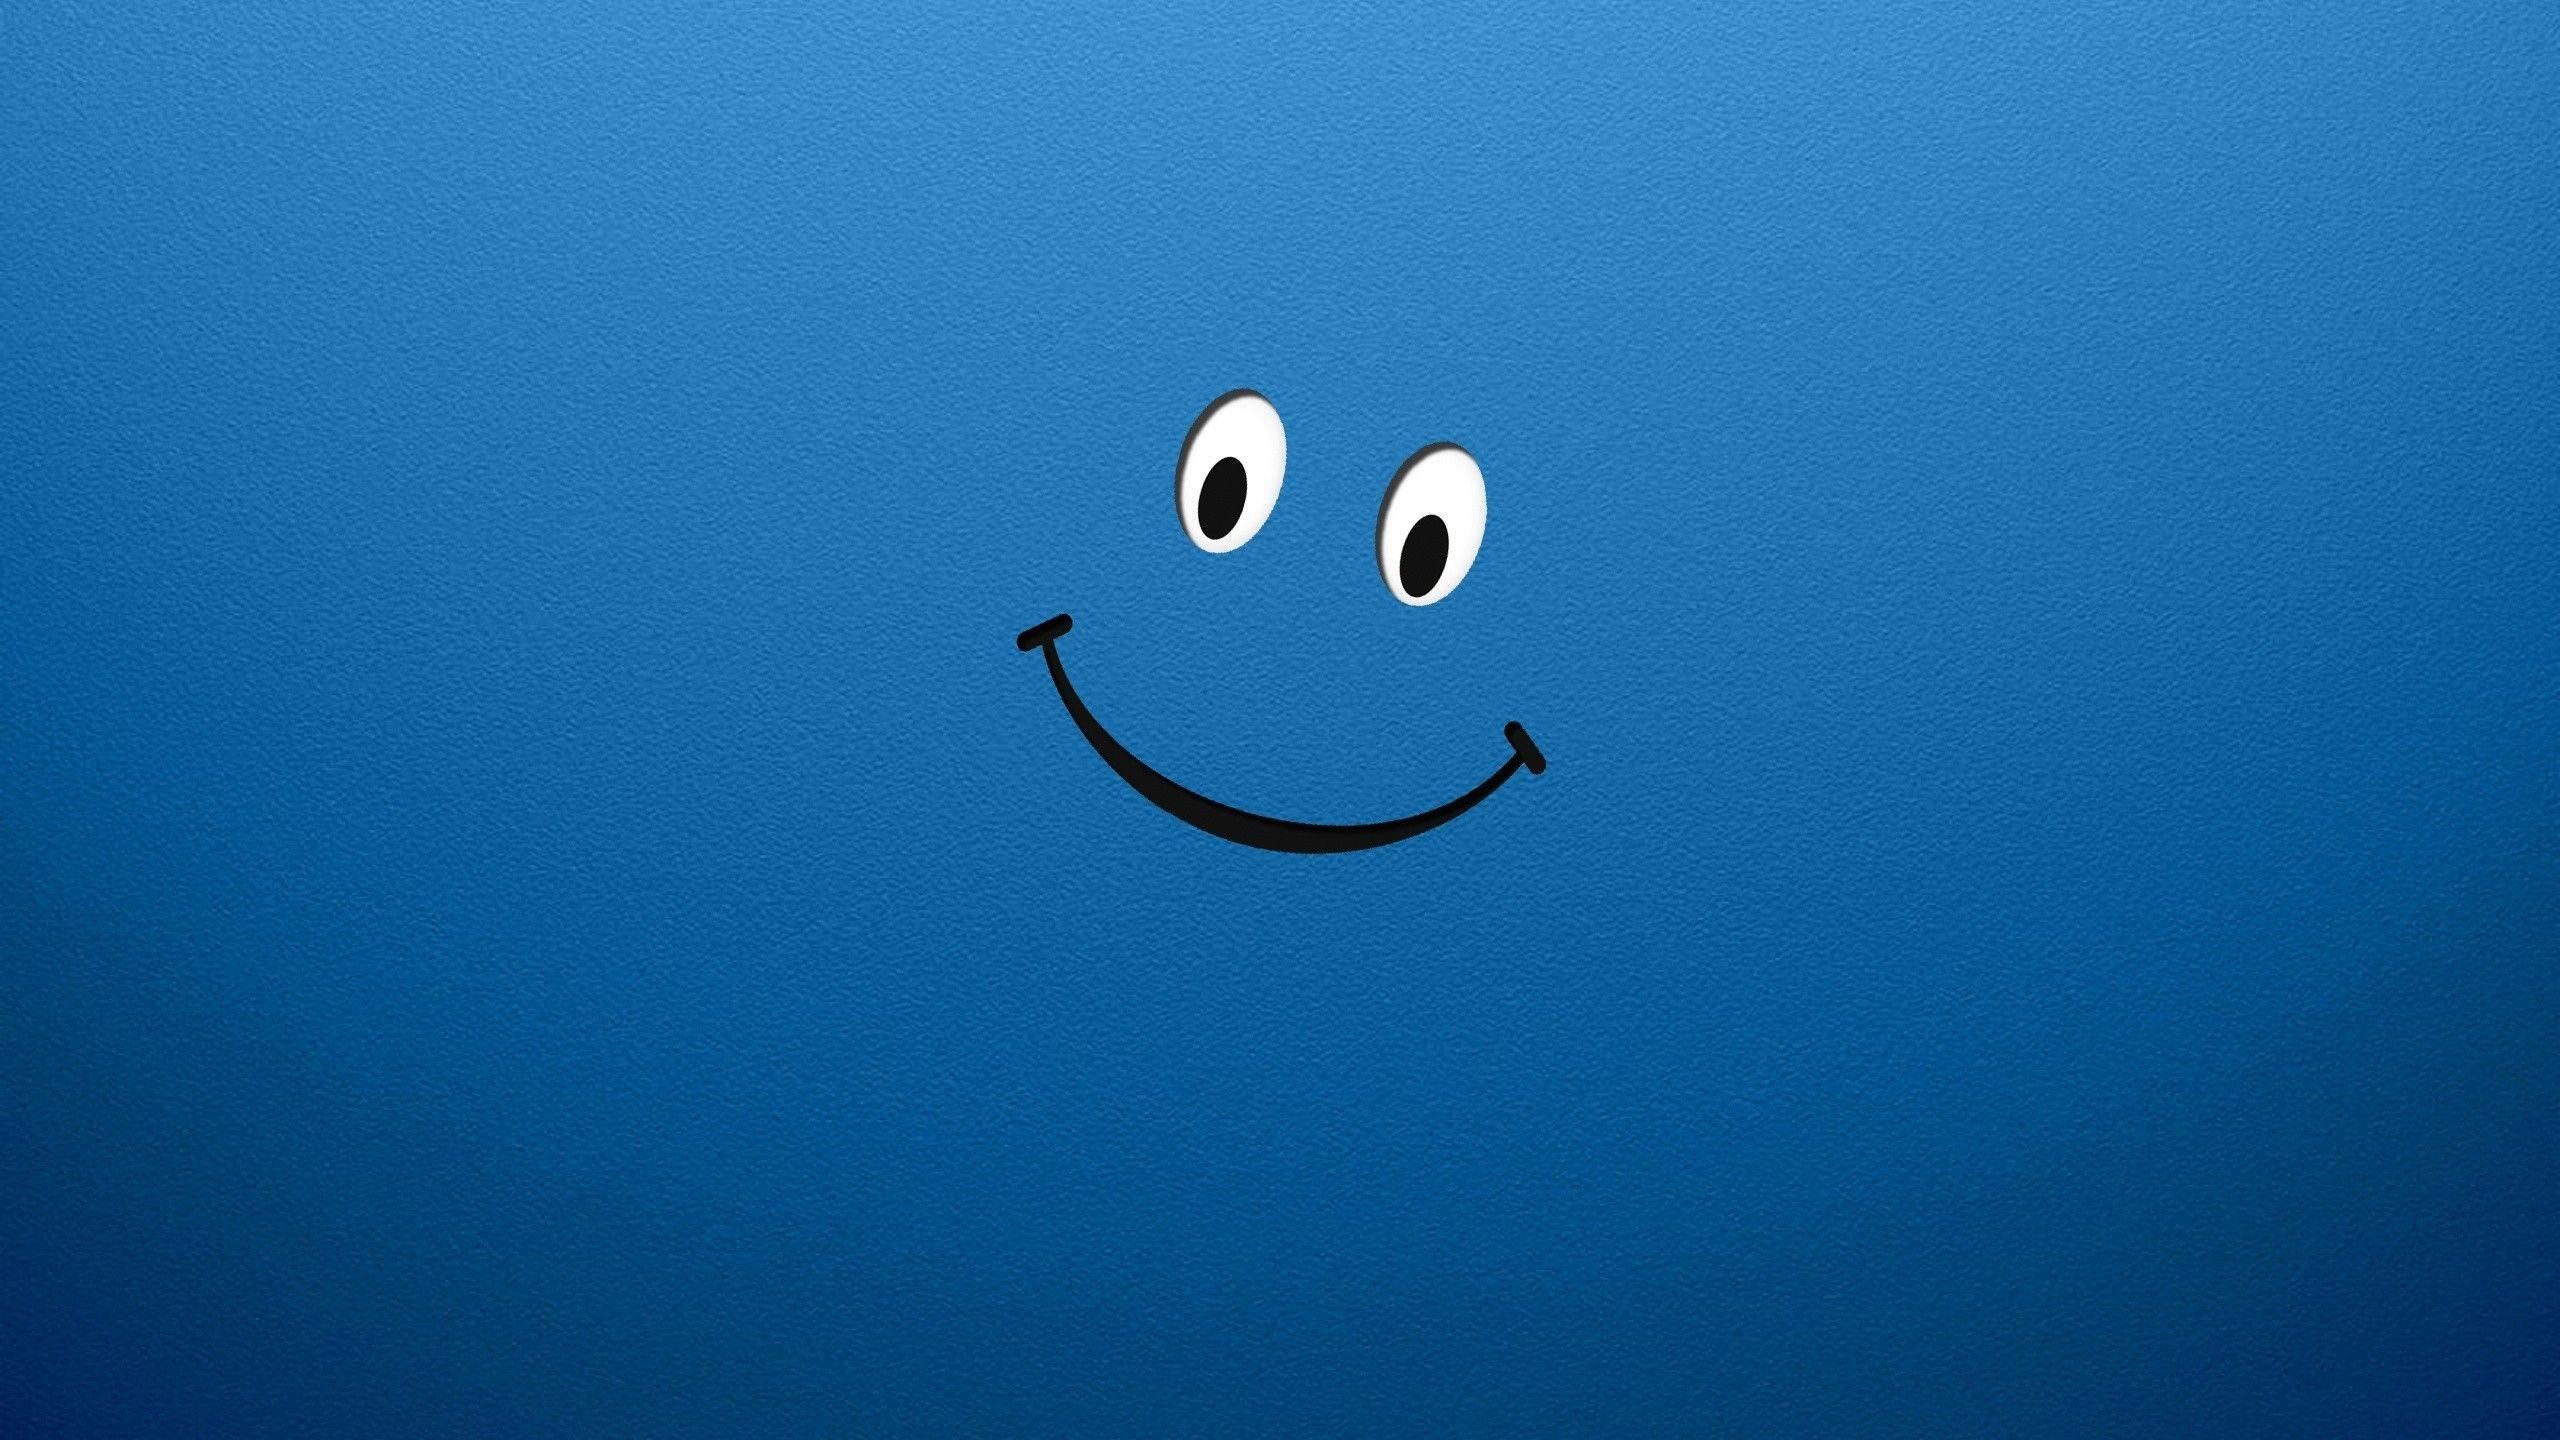 happy faces wallpapers wallpaper cave